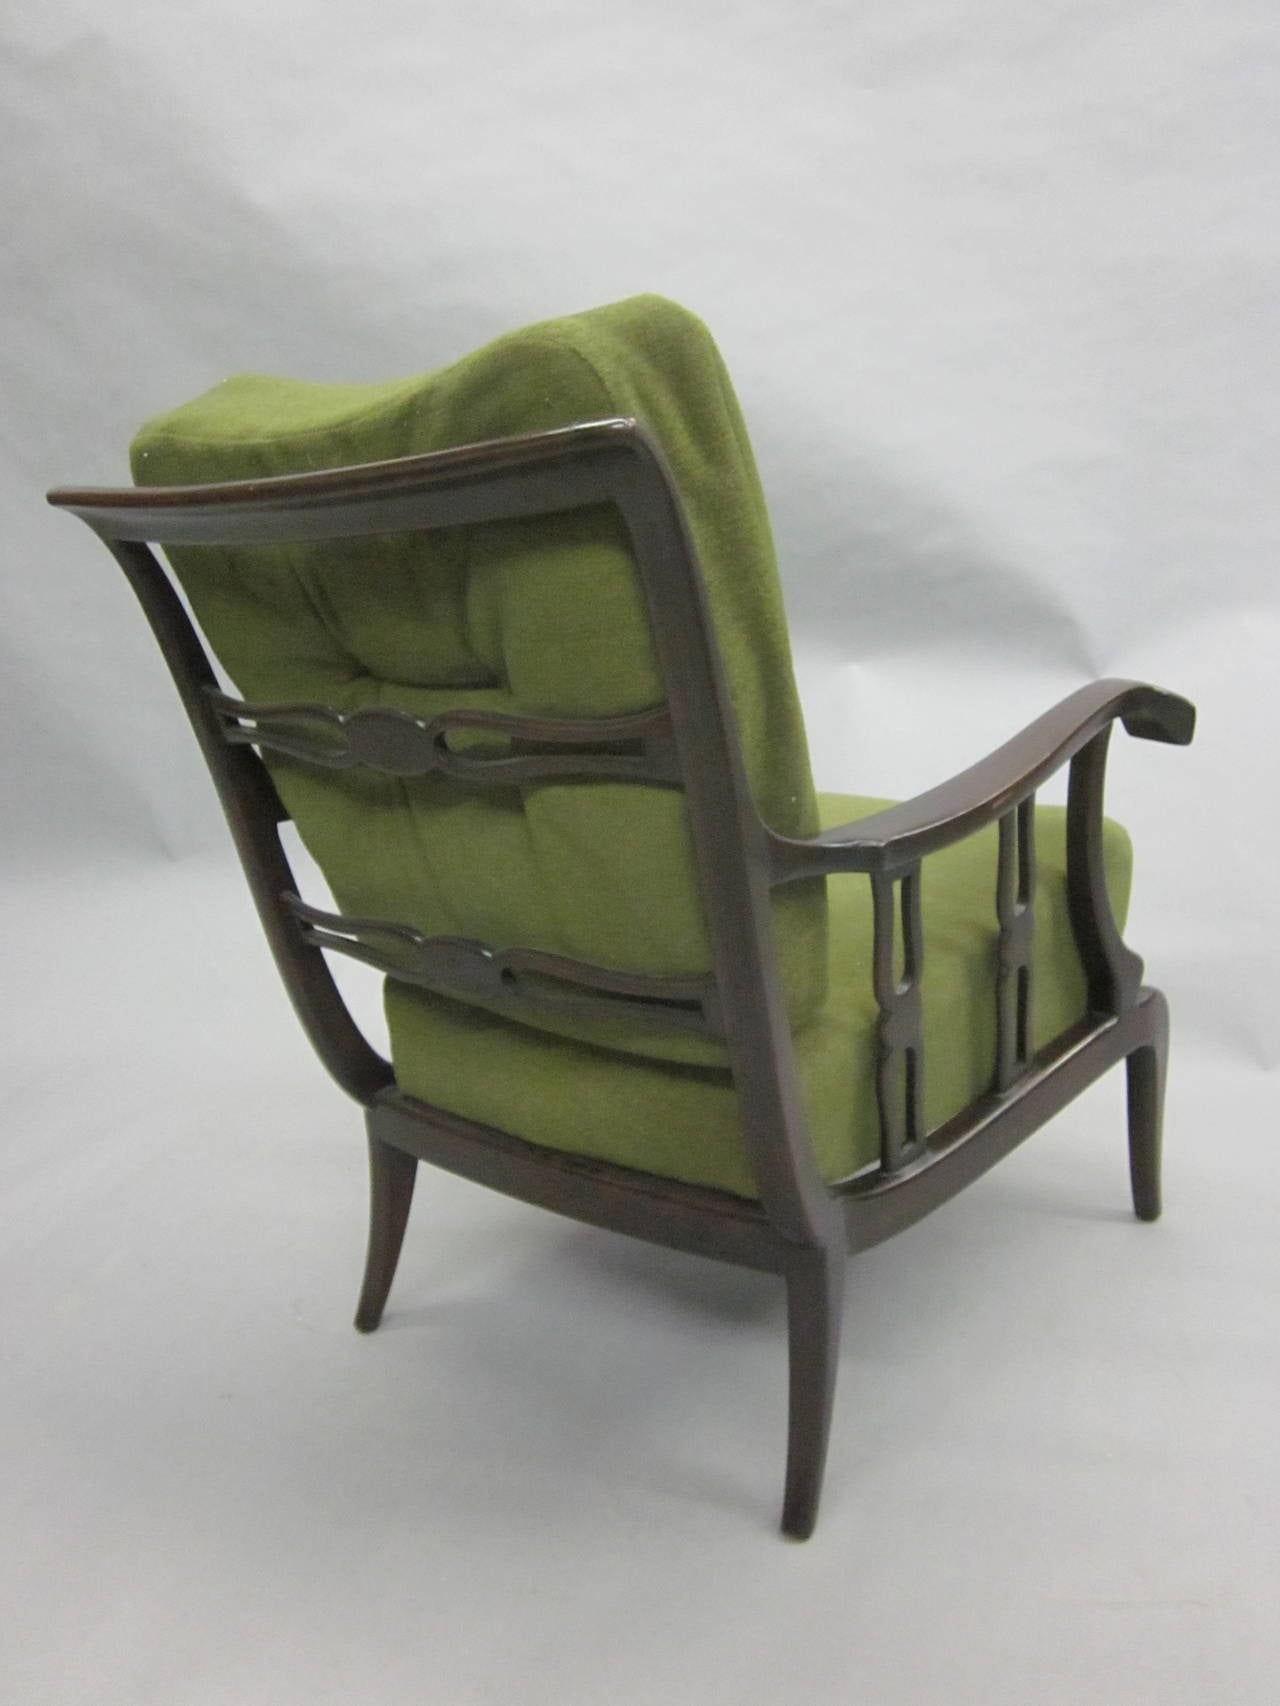 Pair of Italian Mid-Century Modern Neoclassical Lounge Chairs by Paolo Buffa For Sale 1